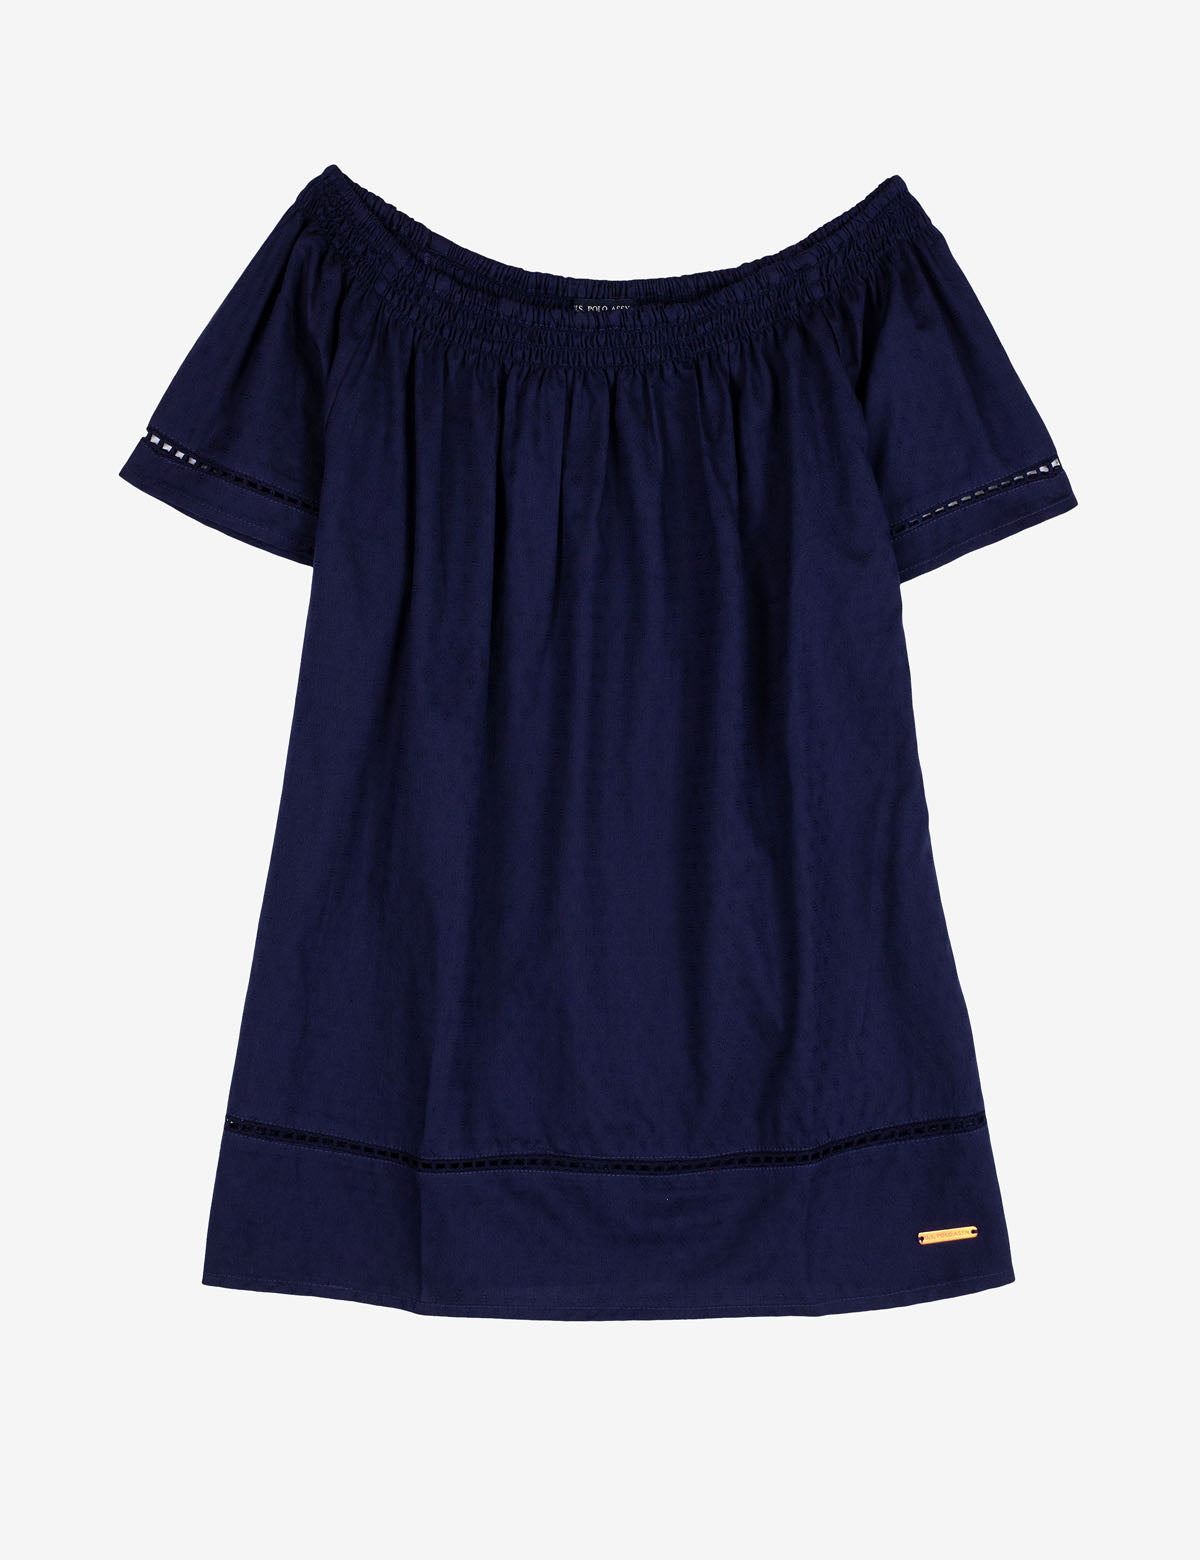 OFF THE SHOULDER TASSLE SHIRT